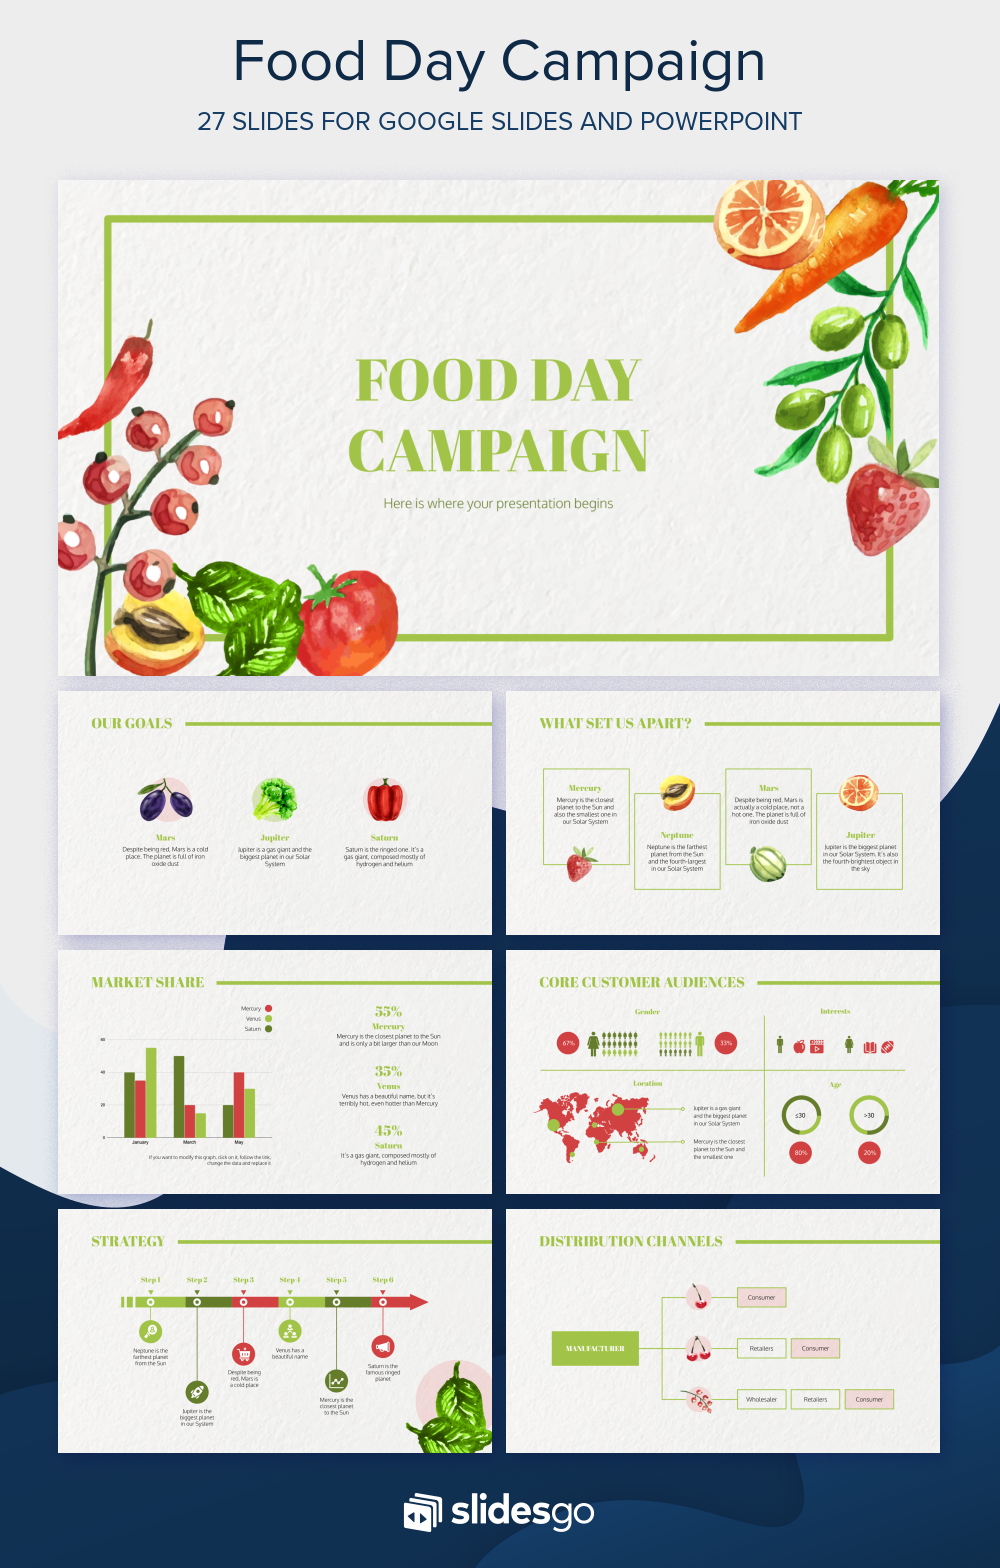 Food Day Campaign Presentation Free Google Slides theme